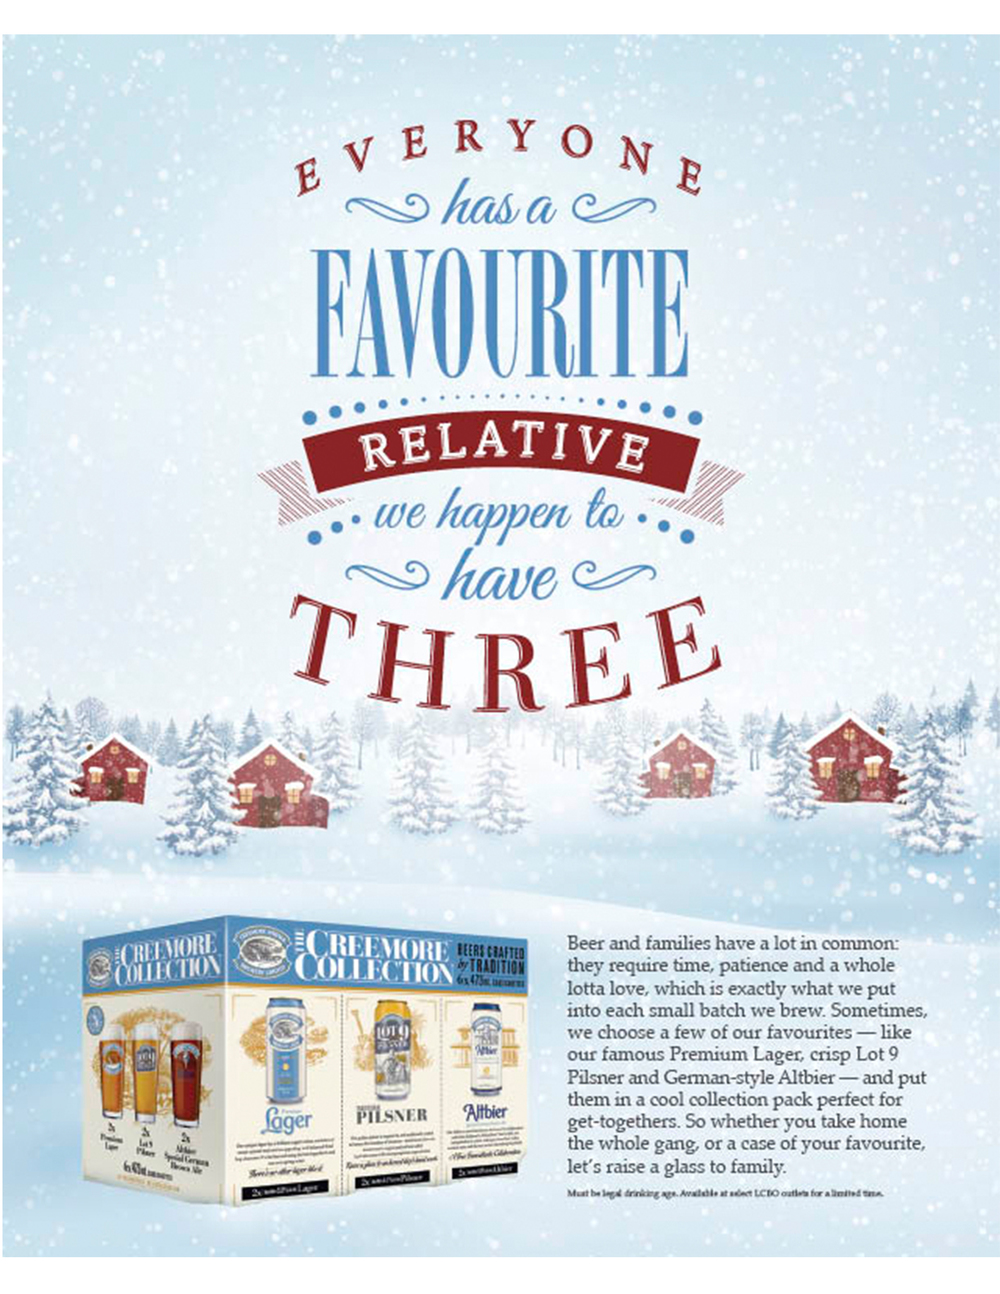 Client Approved. Printed in the Holiday Edition LCBO Food and Drink Magazine 2015.